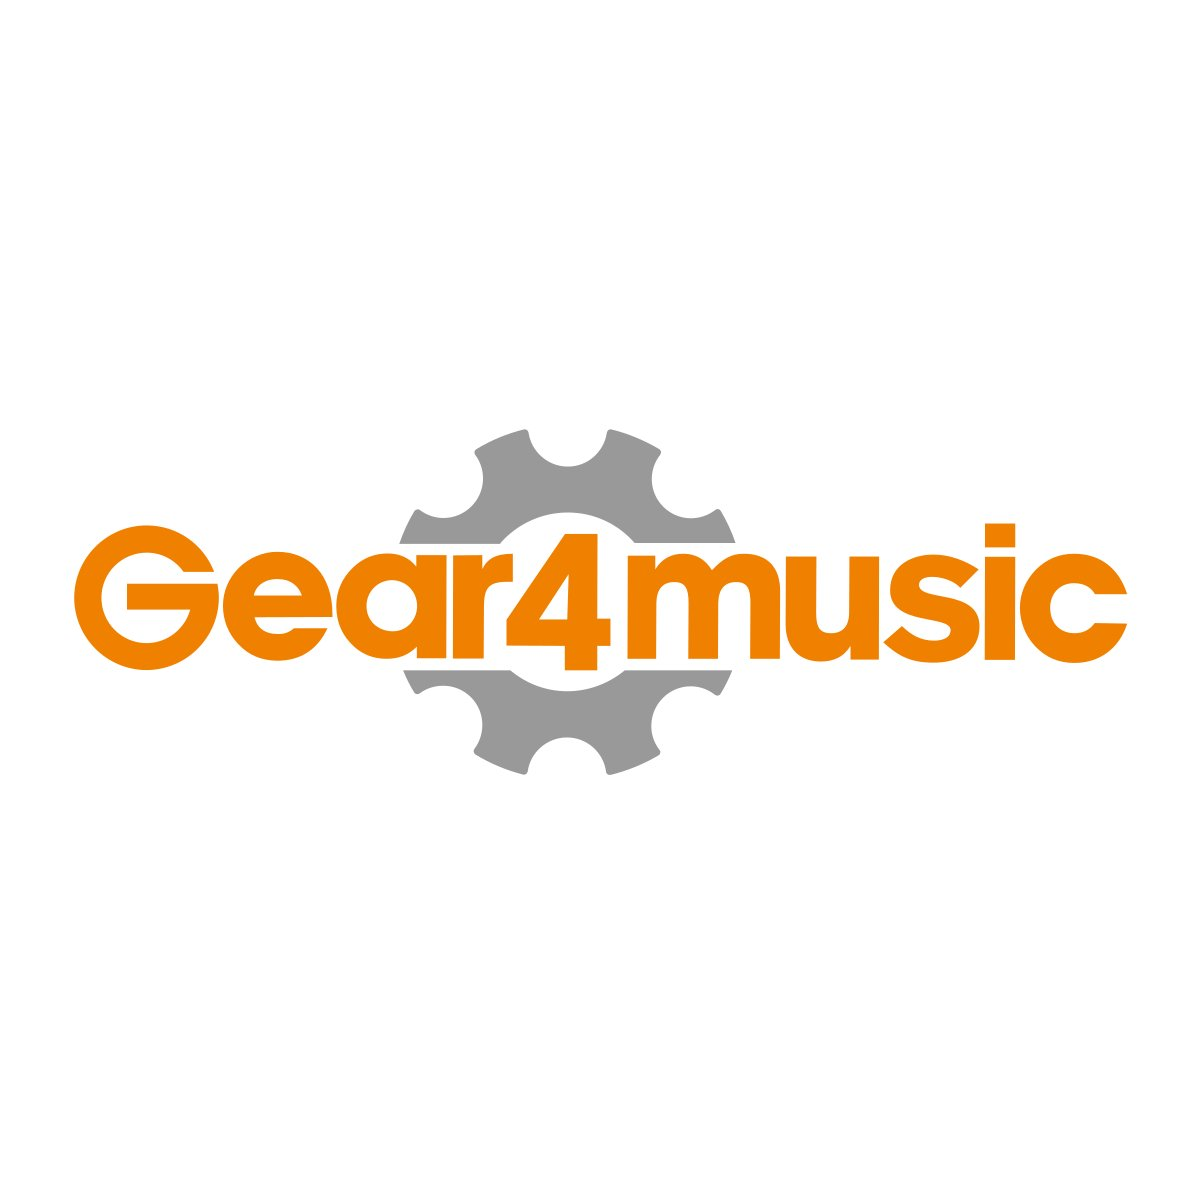 LA Short ScalE-Bassgitarre von Gear4music, schwarz